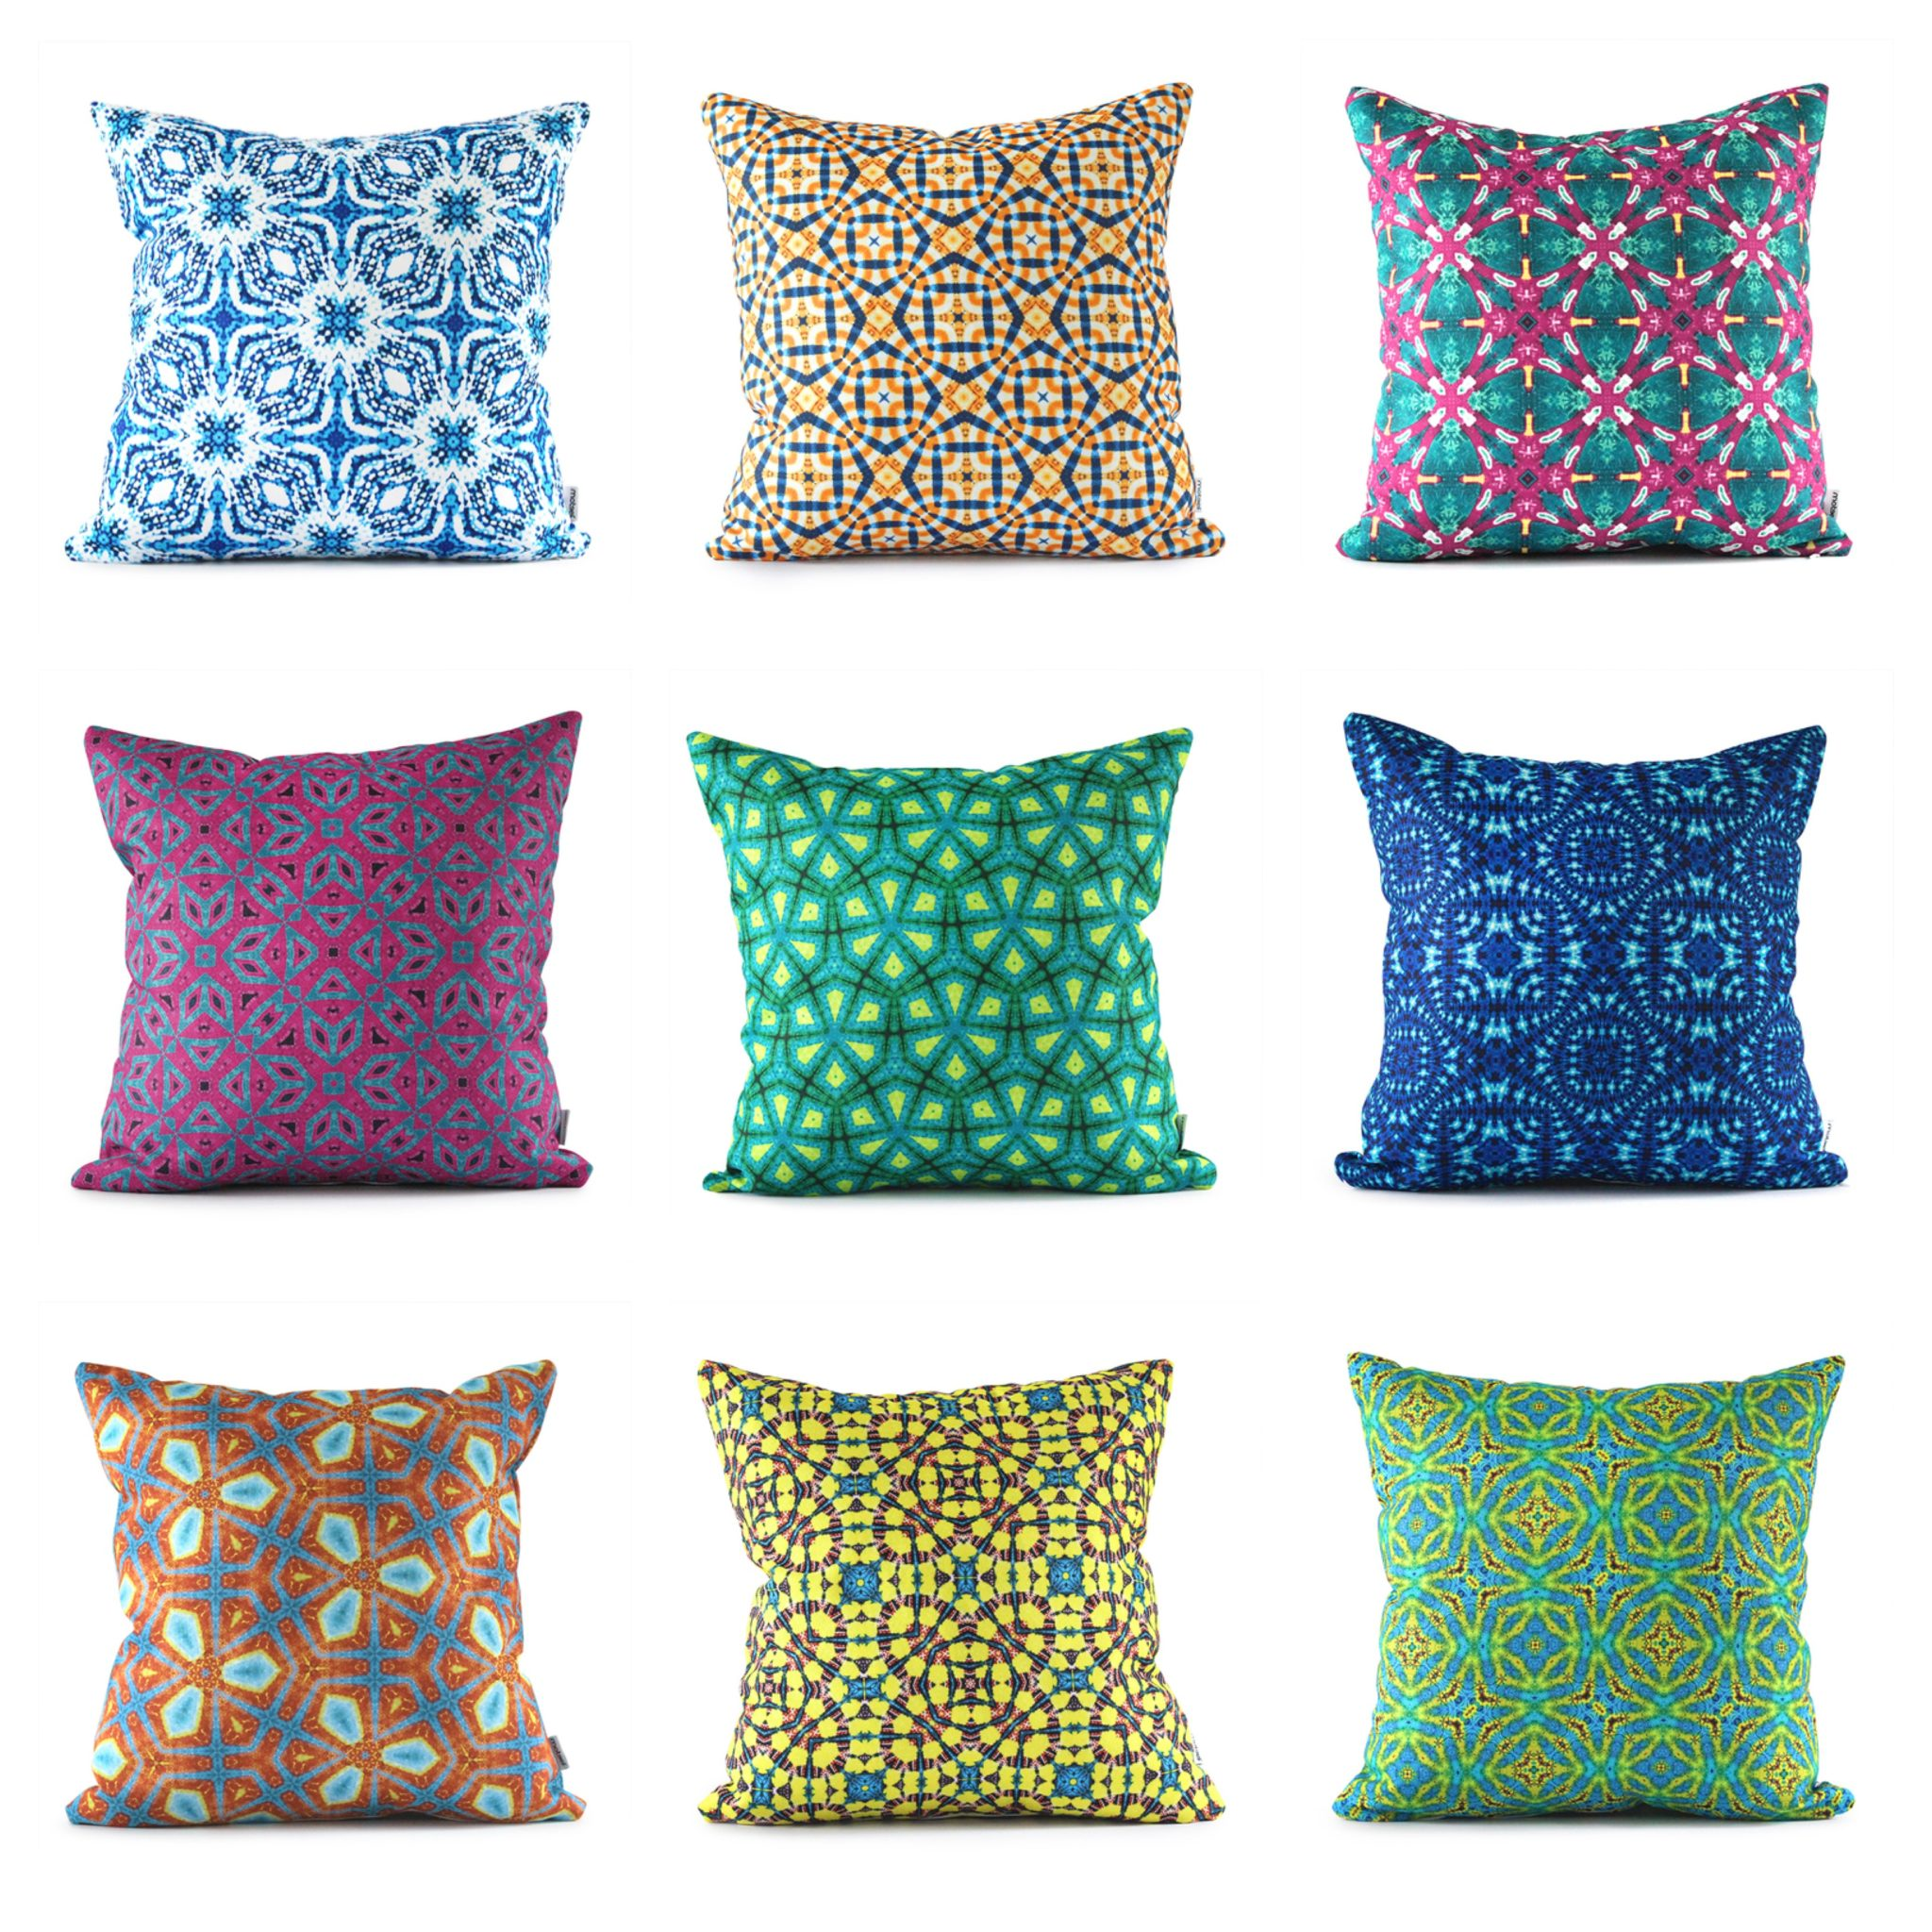 Top Outdoor cushions to brighten up your garden this spring - The  JD63